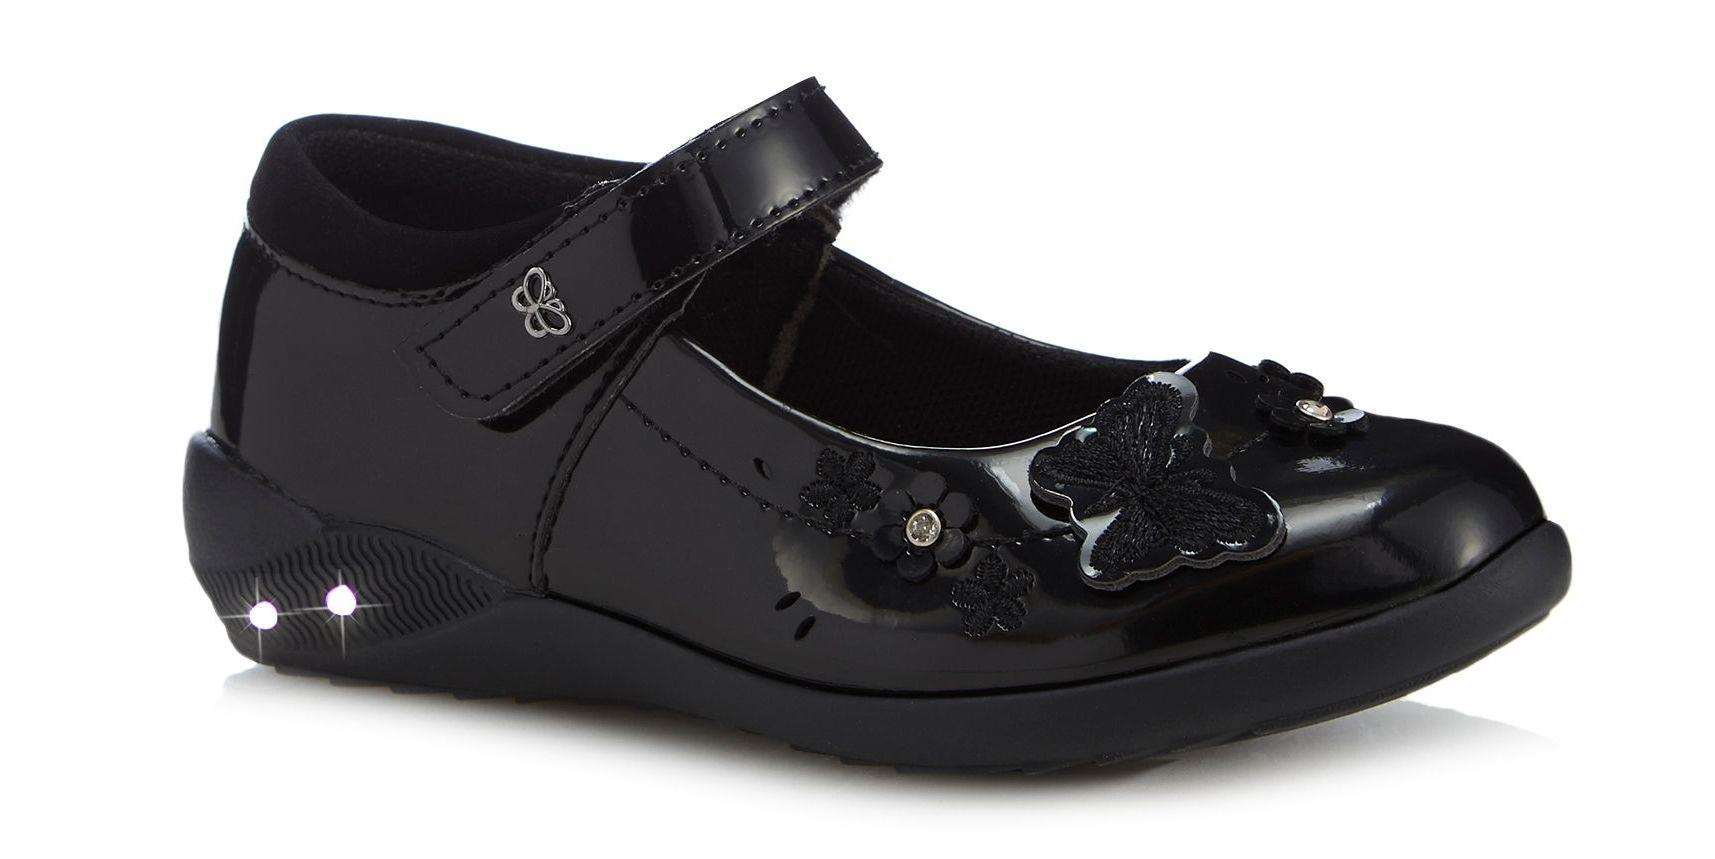 e6d7c62148 Girls' Black Patent Light-Up Mary Jane School Shoes, normally from £24